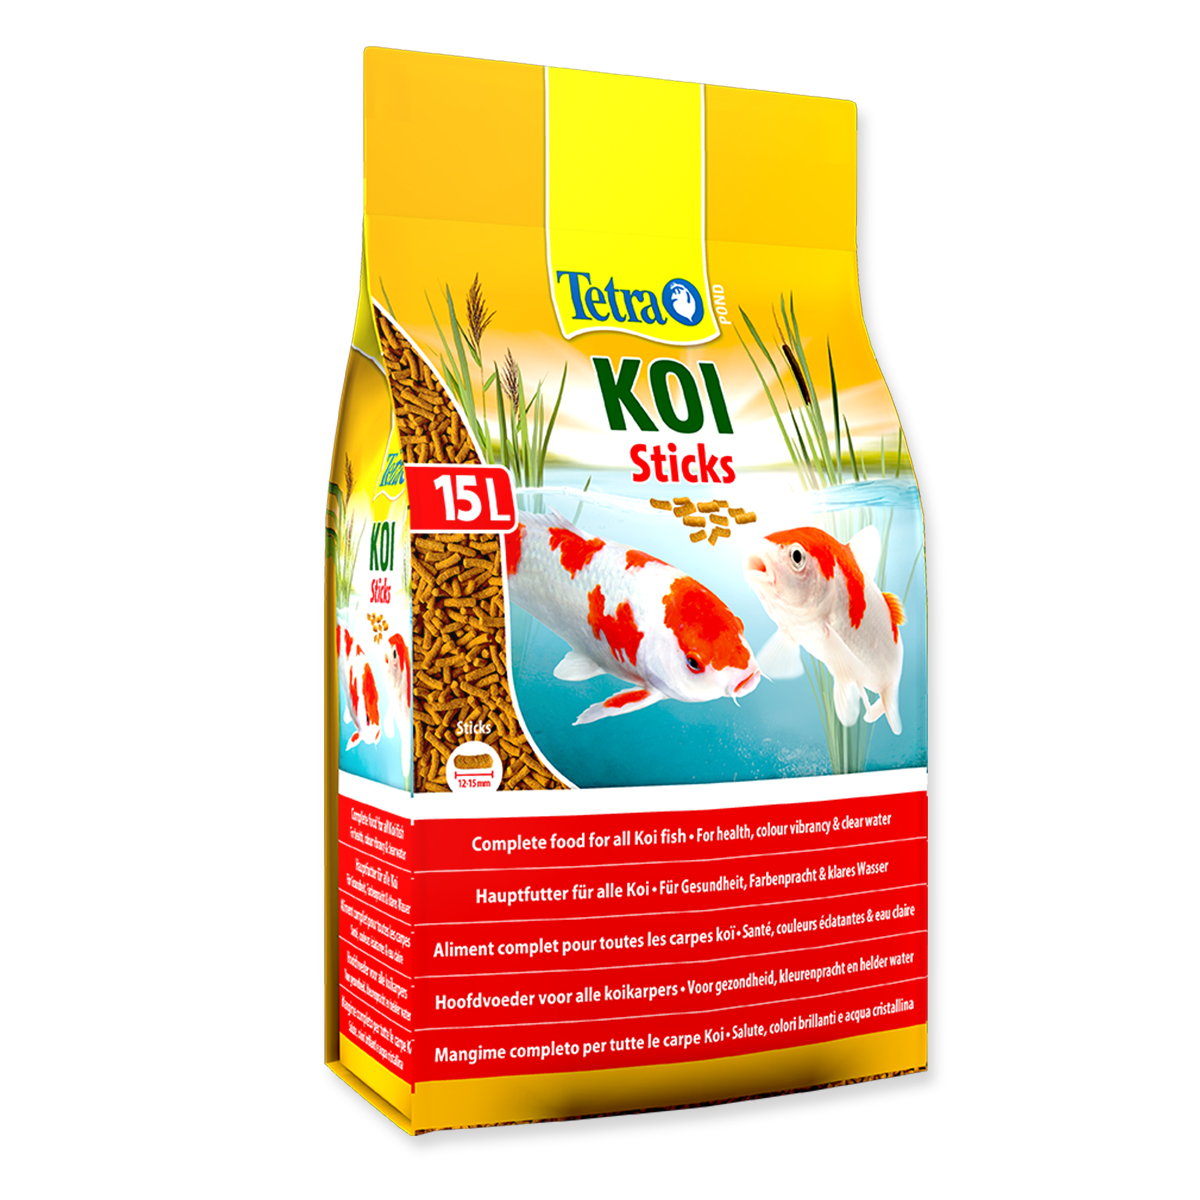 Tetra koi sticks 15 litre 2350g for Koi pond sticks